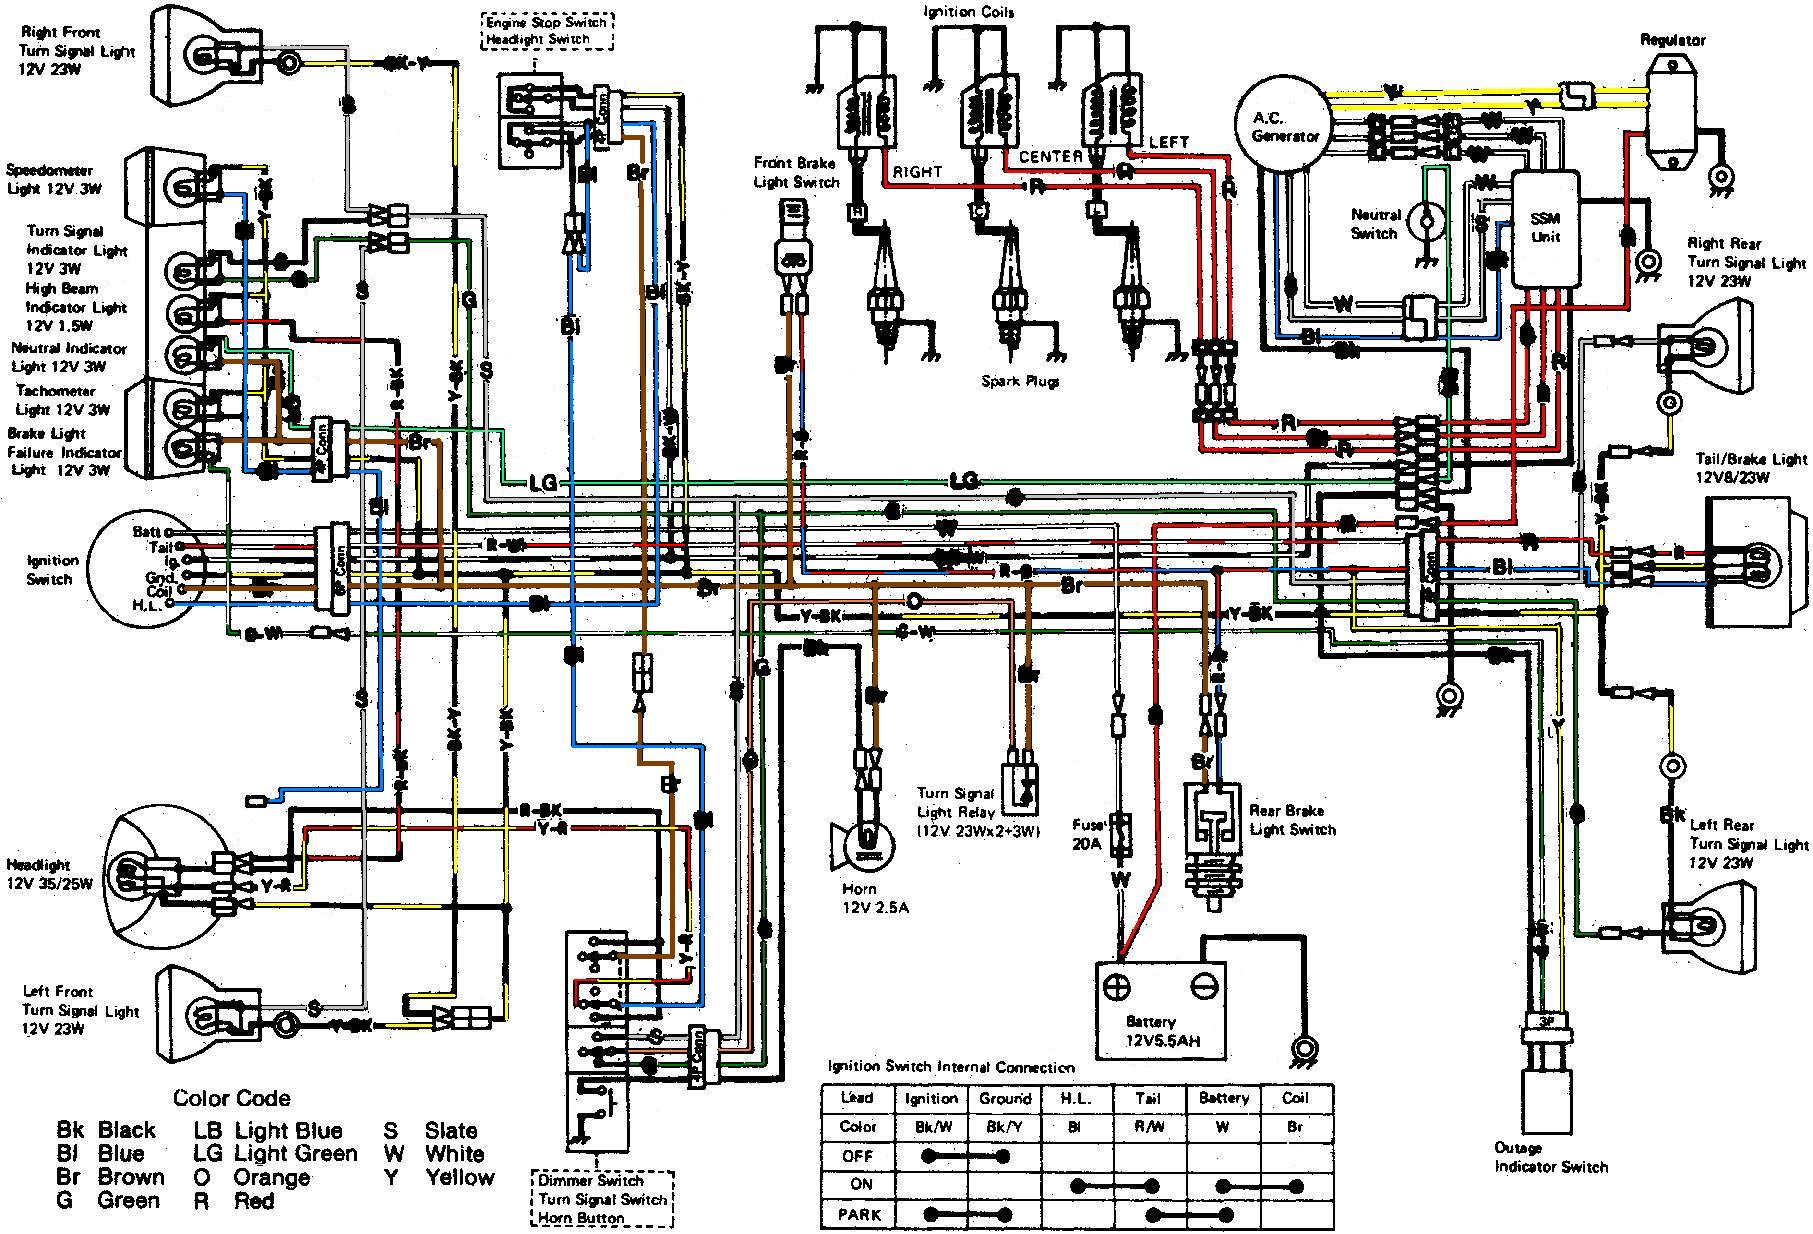 Wiring Diagram For Kawasaki Mule 4010 - Wiring Diagrams on